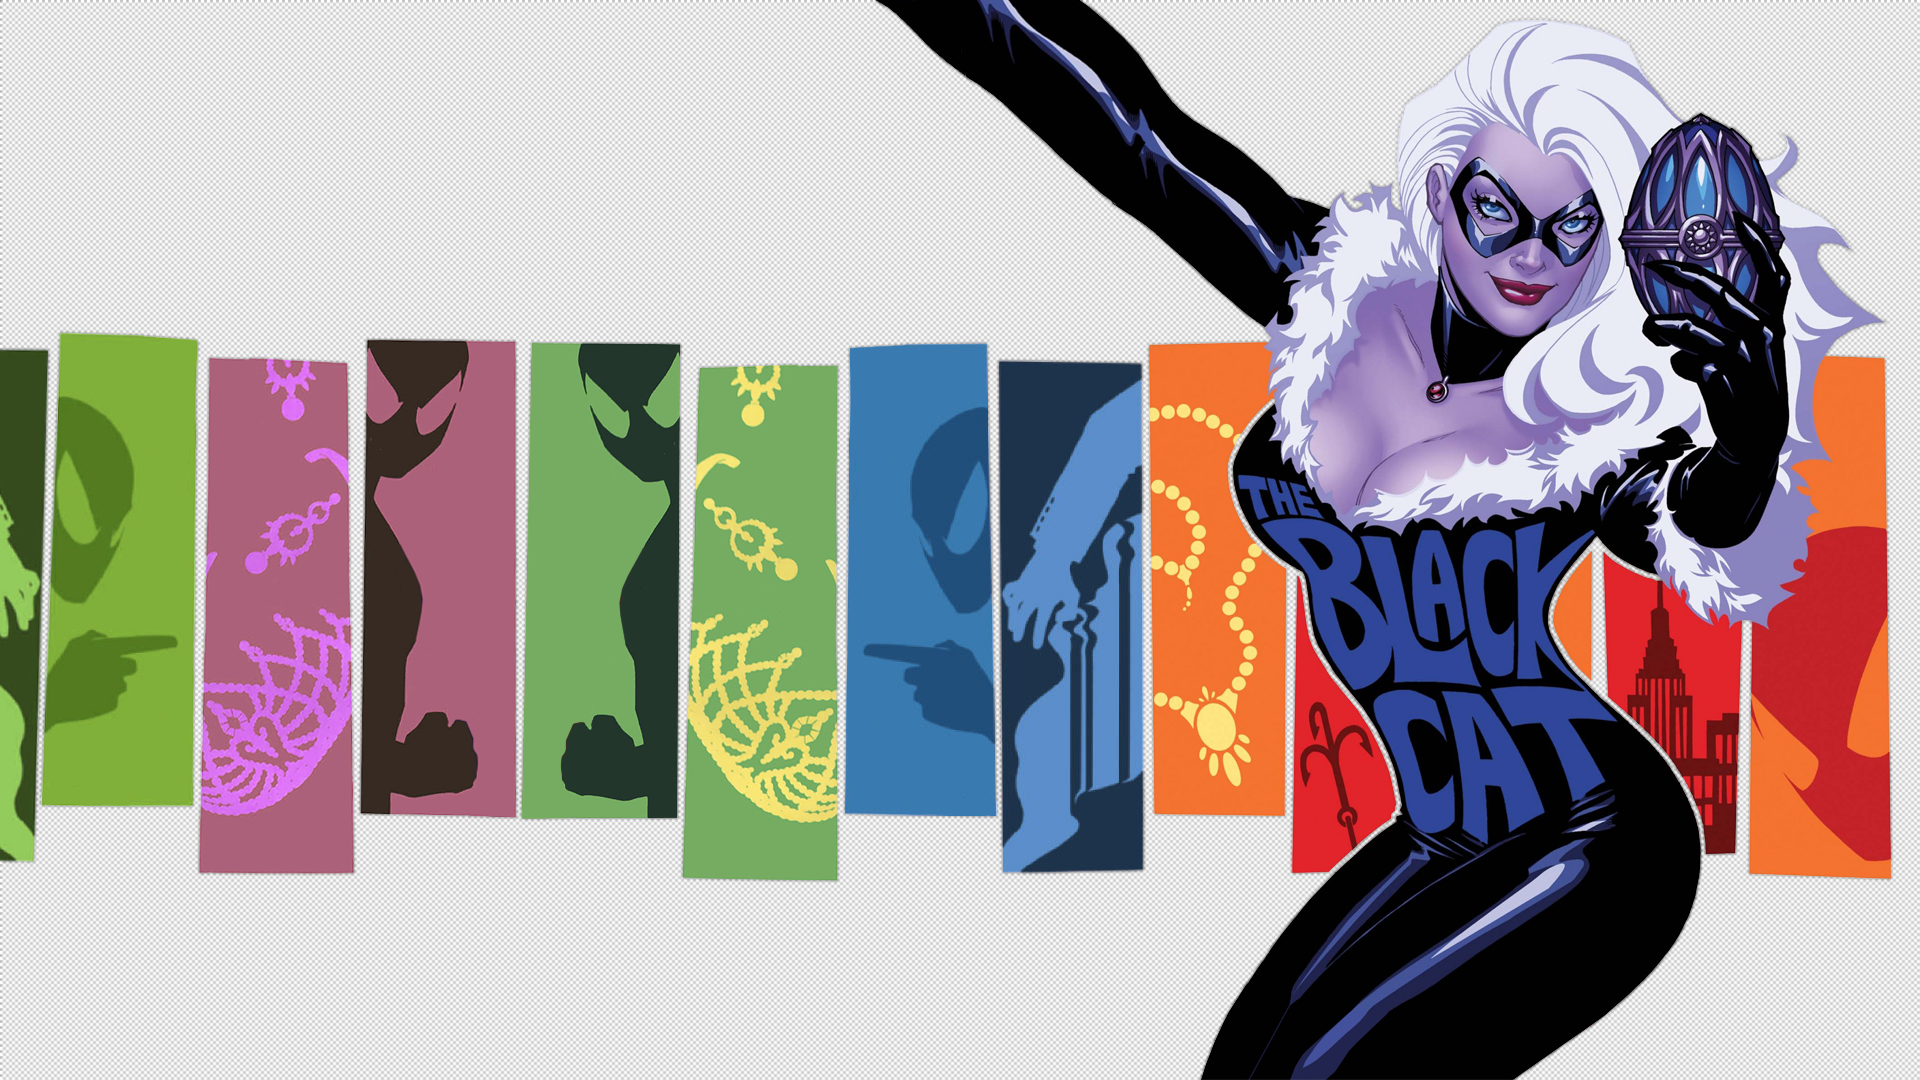 Black Cat Marvel Wallpaper